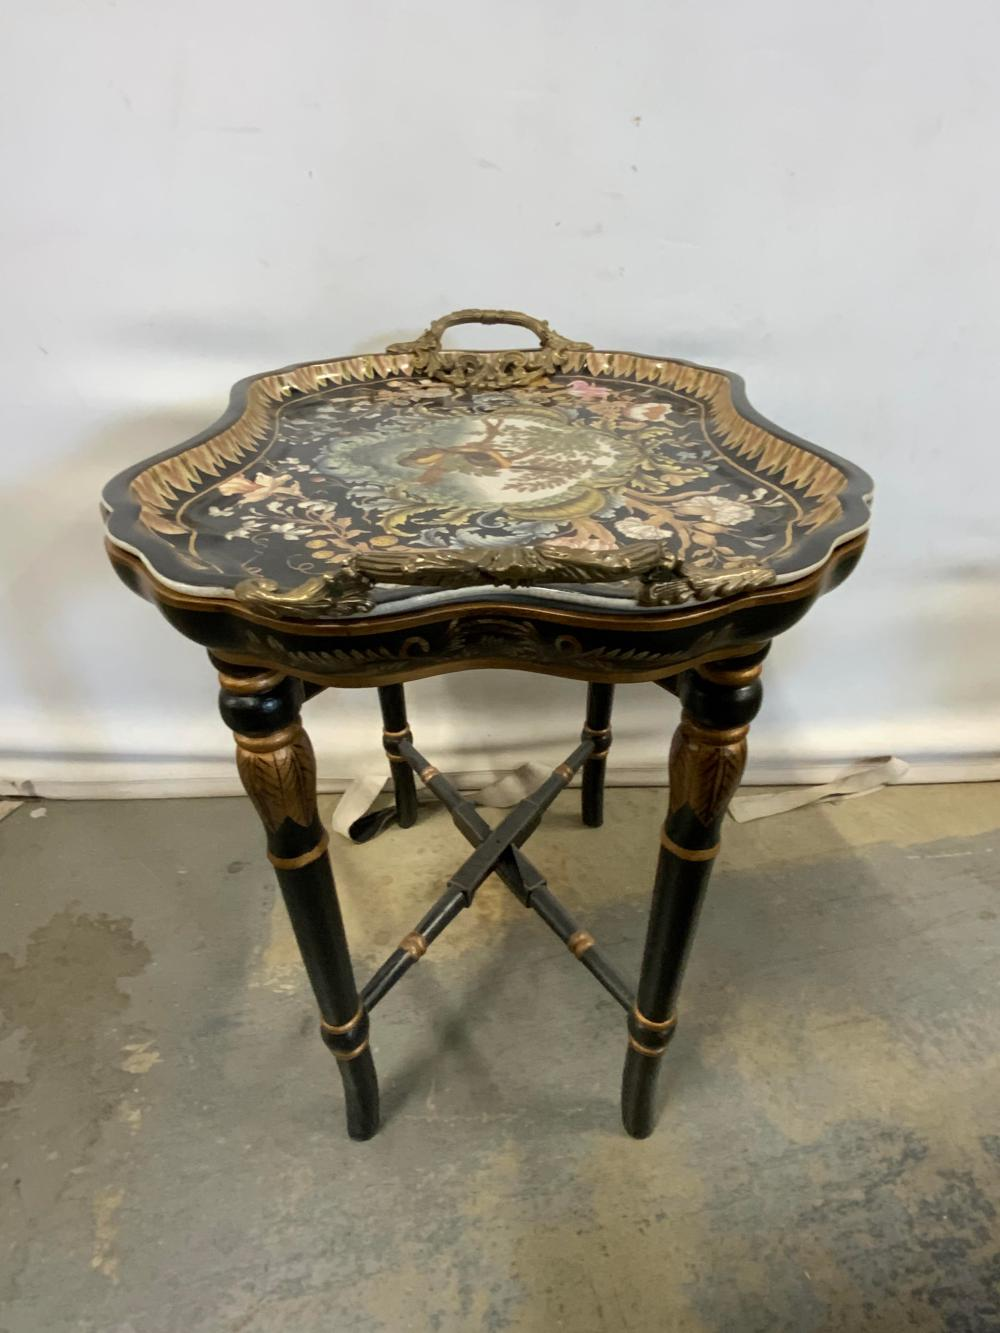 Vintage CASTILIAN Ceramic Tray Topped End Table